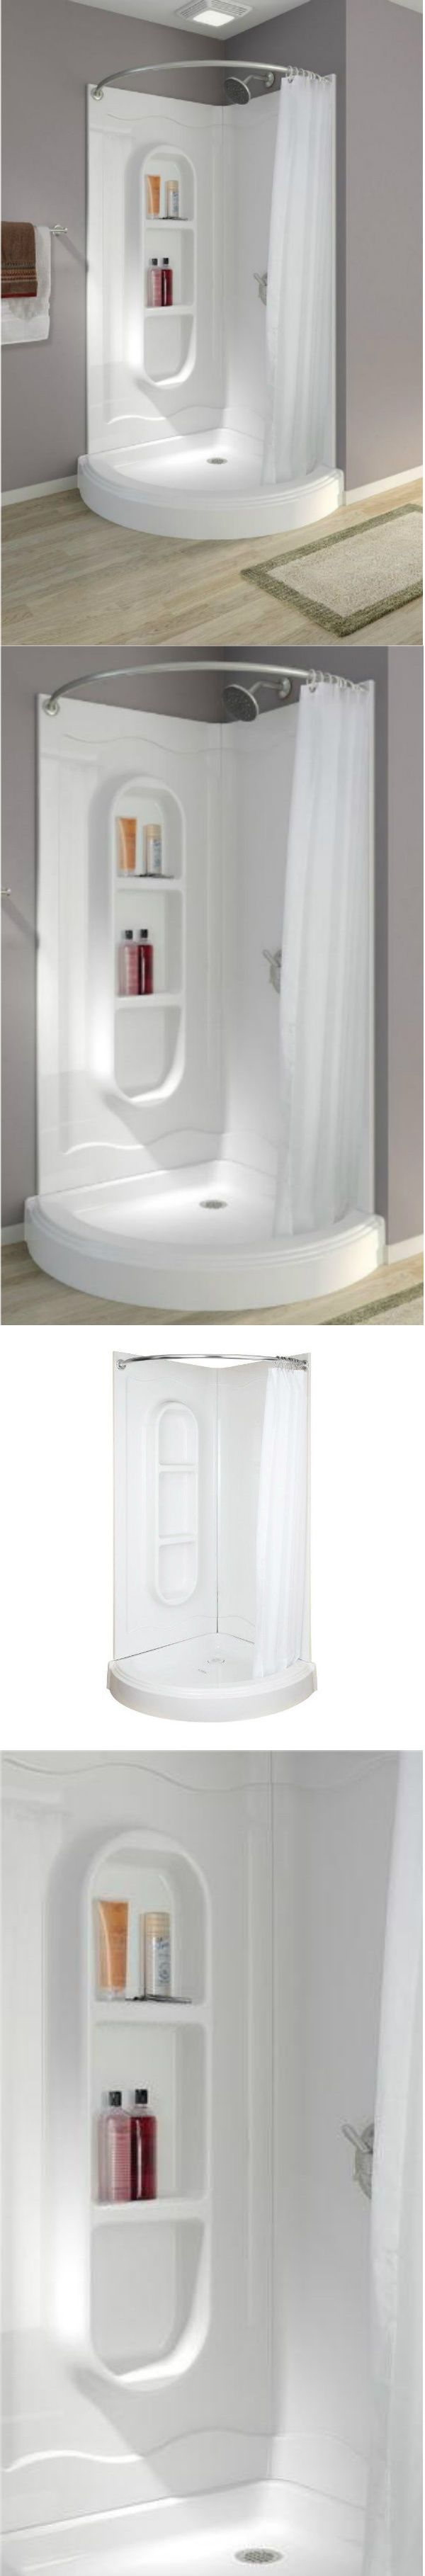 Shower Enclosures and Doors 121850: Corner Shower Stalls Kits Walk In One Piece Curtain Rod Bathroom White Curved -> BUY IT NOW ONLY: $524.98 on eBay!